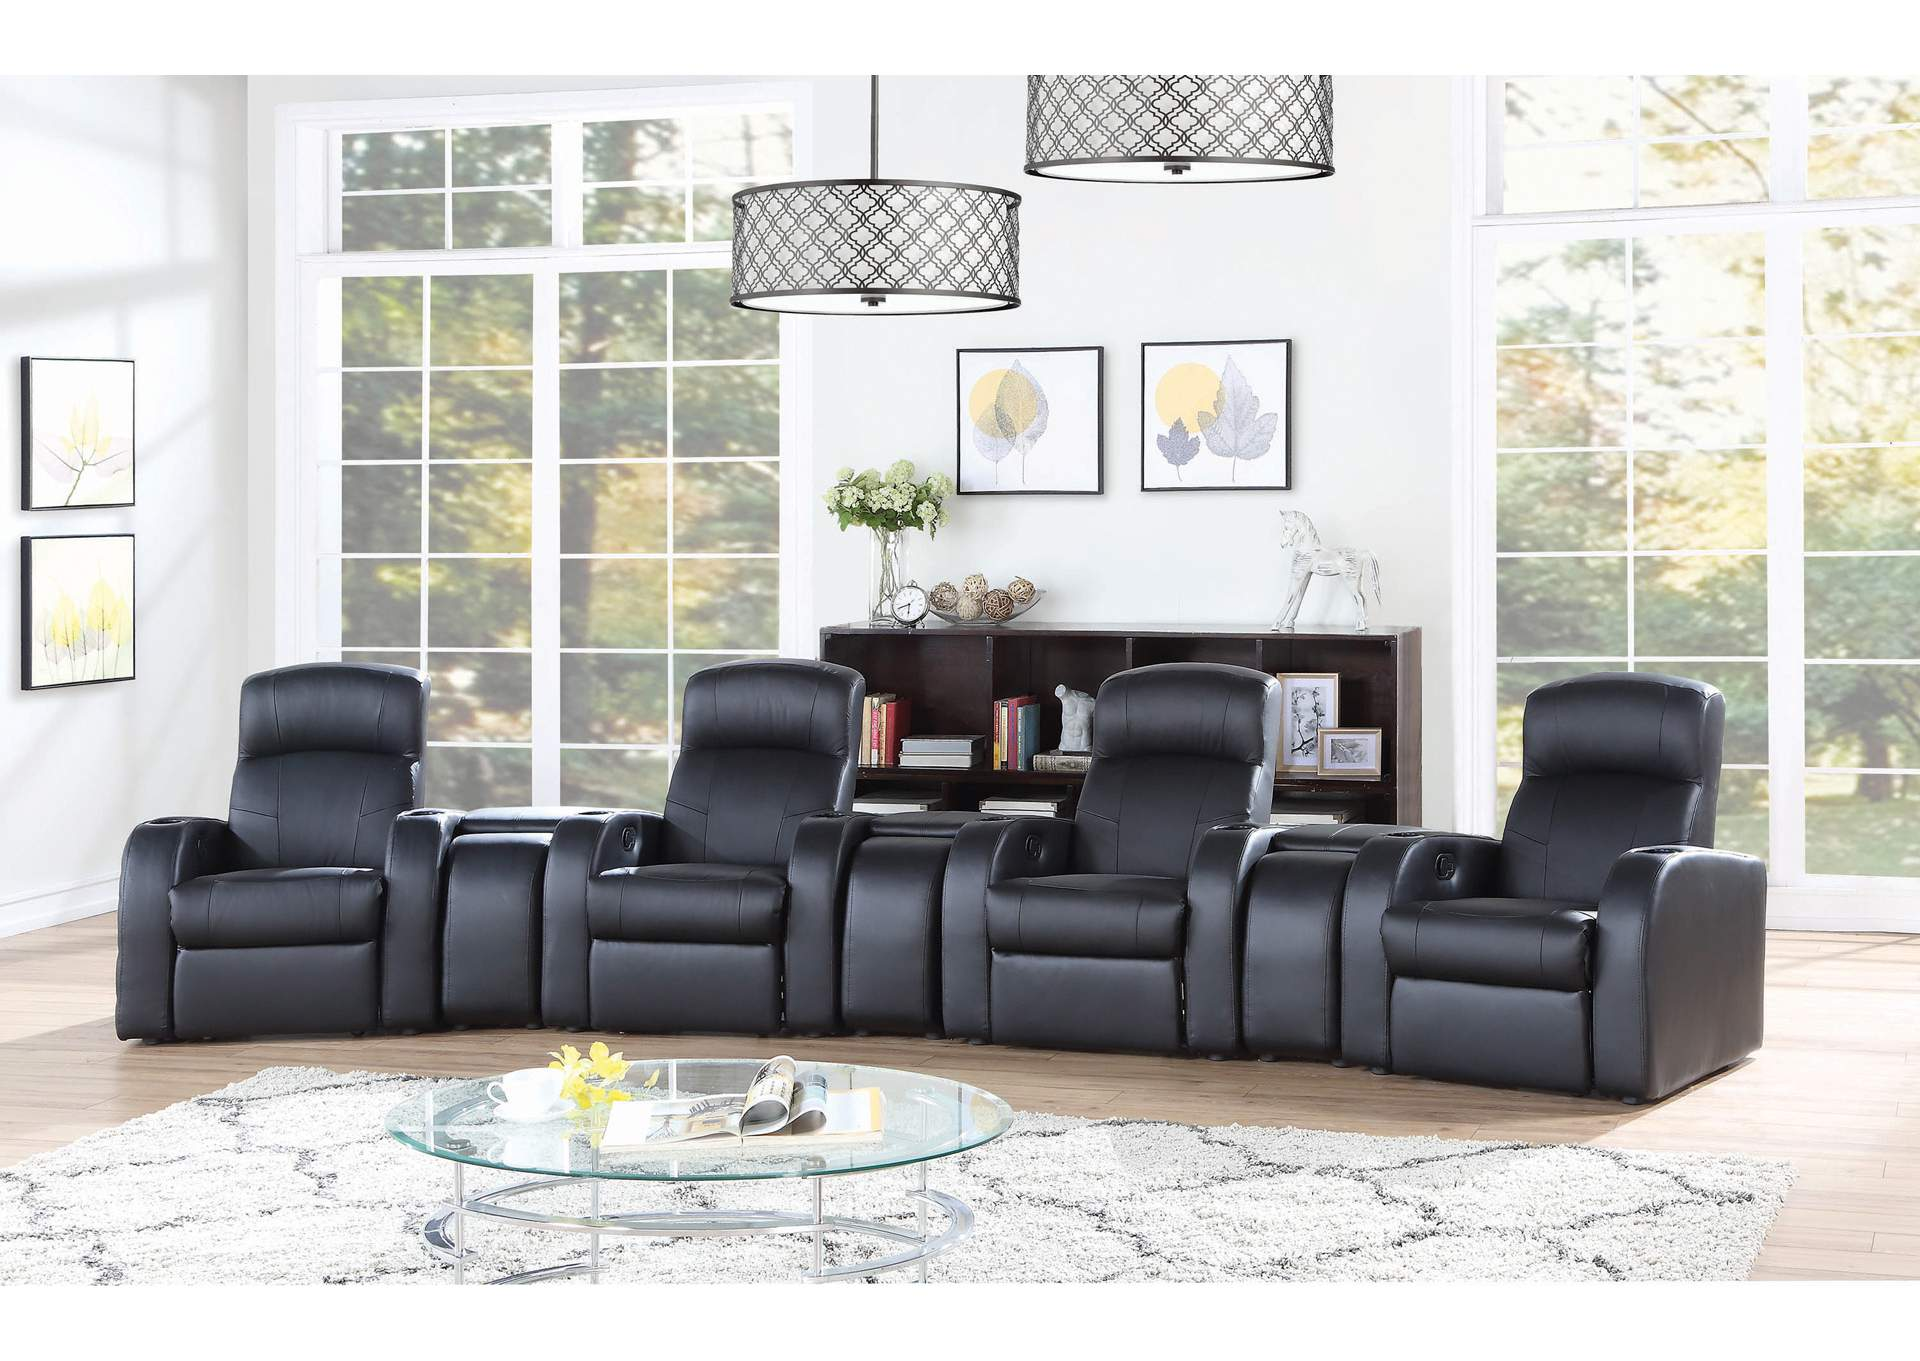 Cyrus Brown 7 Pieces 4-Seater Home Theater,Coaster Furniture